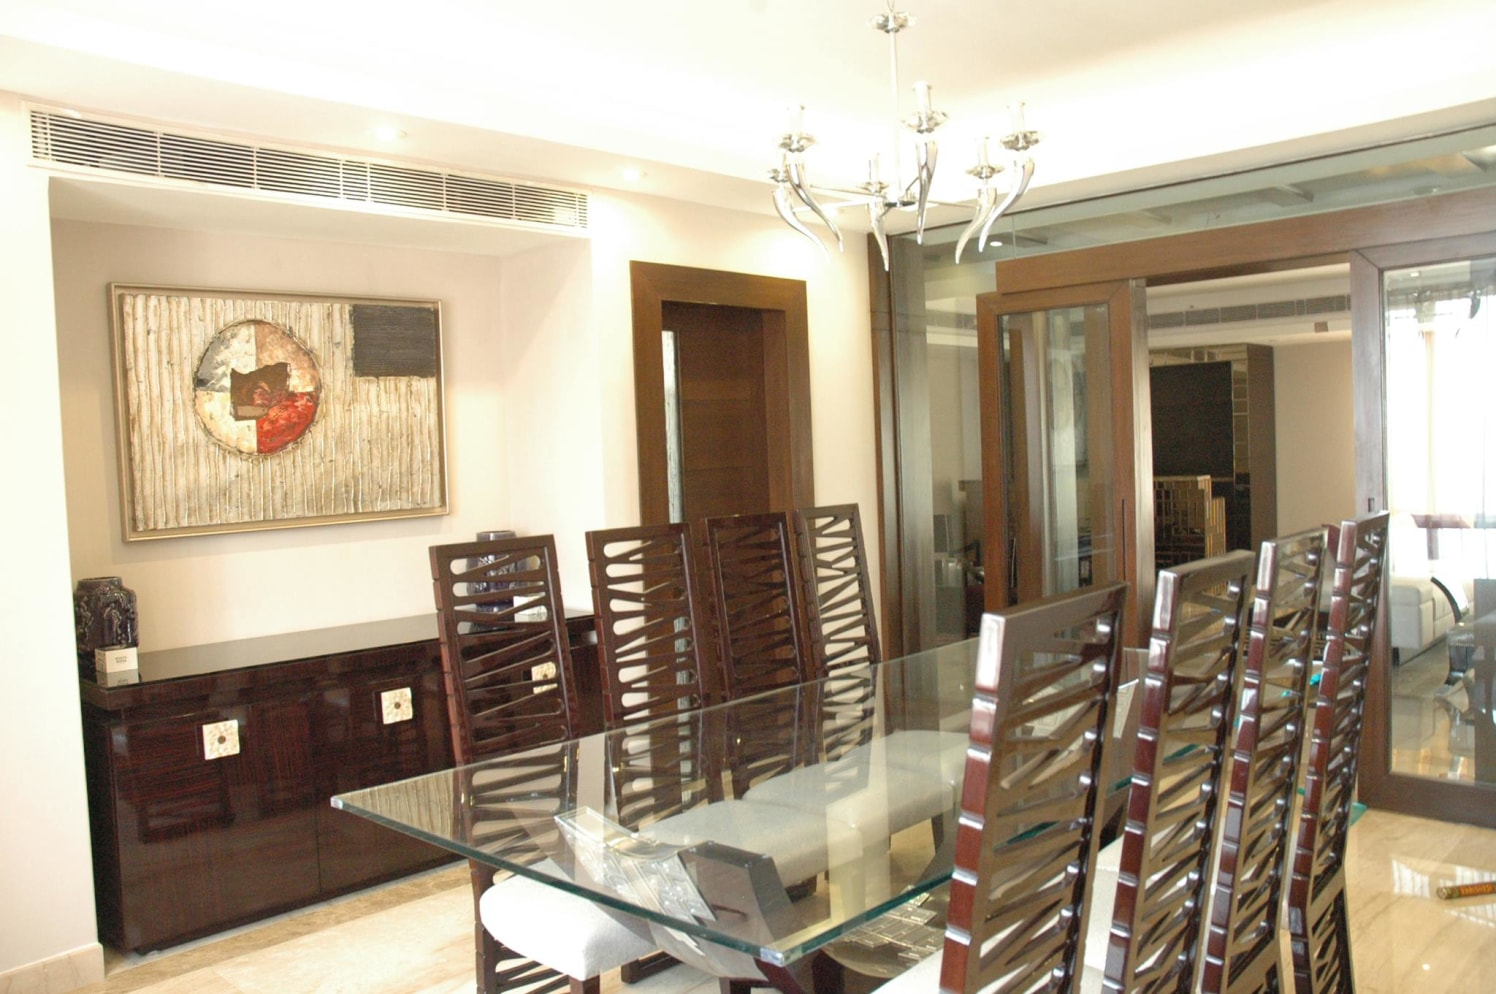 Dining Room With Traditional Dining Chairs by Ishika singh Dining-room Traditional | Interior Design Photos & Ideas